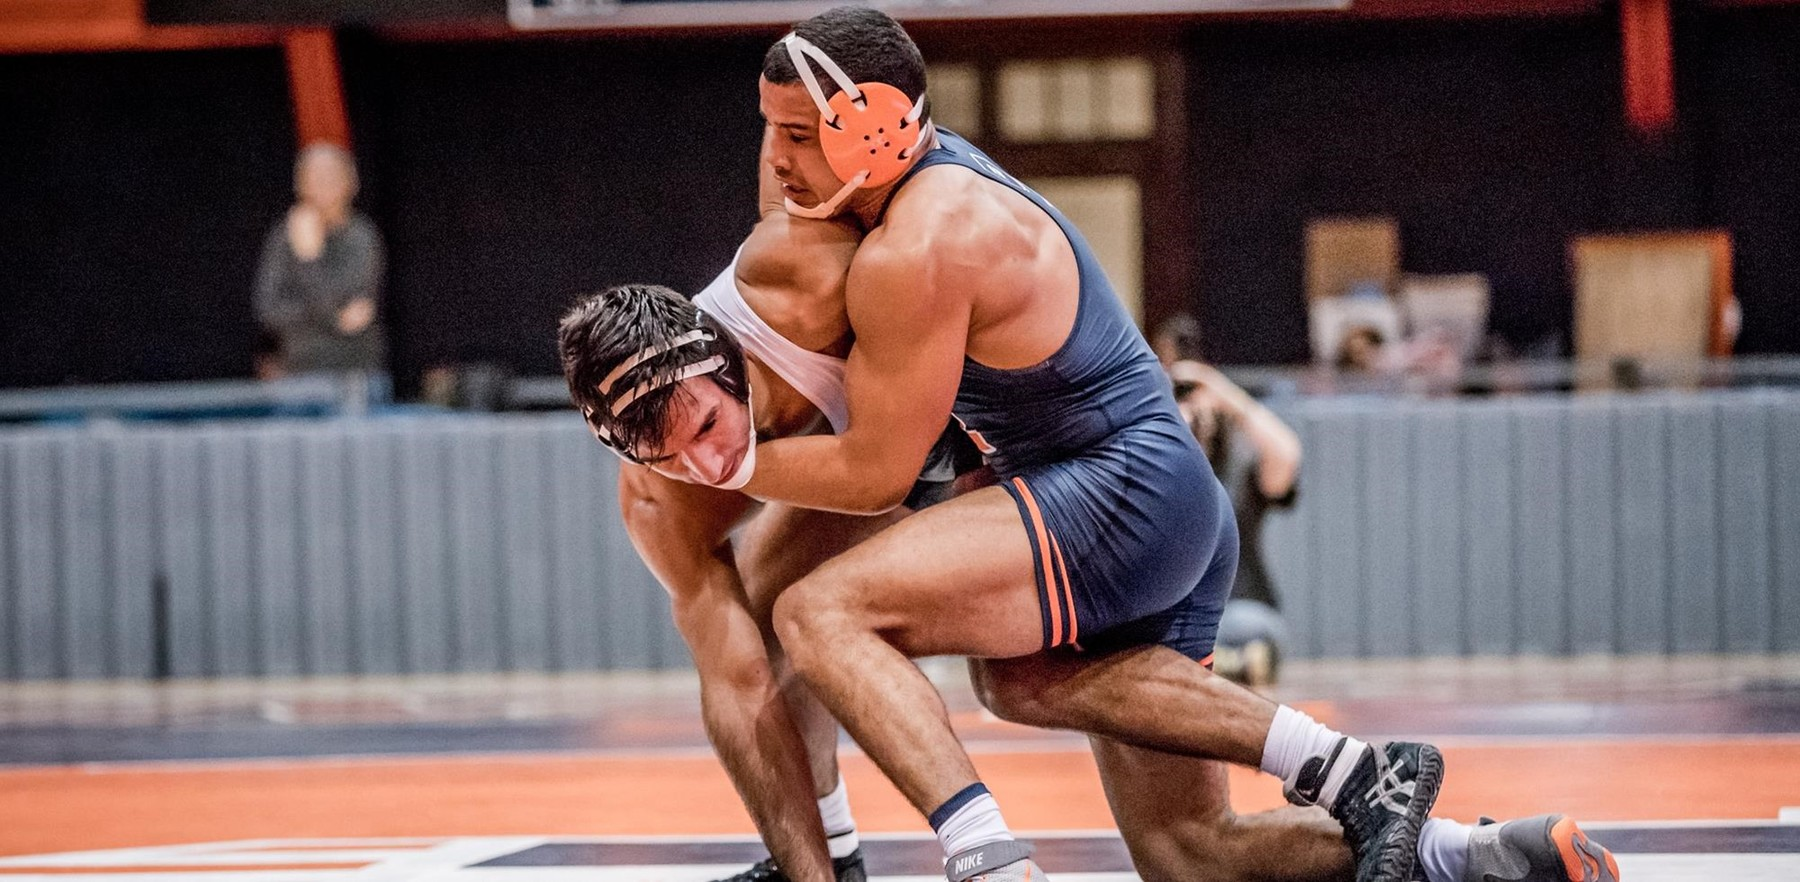 redshirt junior wrestler Emery Parker (184 pounds) has 13 straight wins